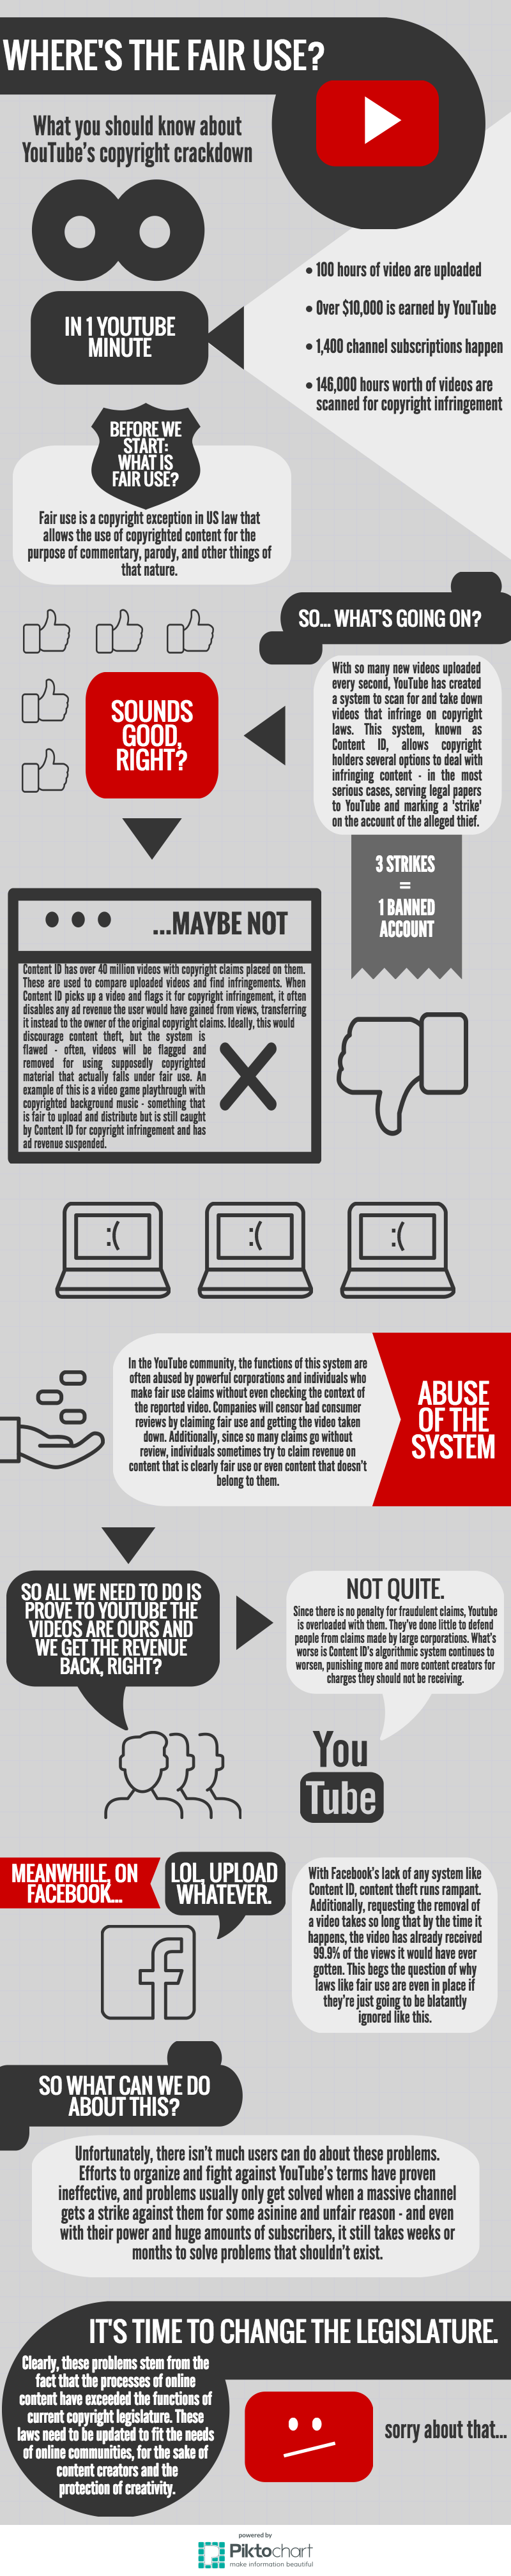 Pin by Raja Koppula on Infographics | Fair use, Infographic